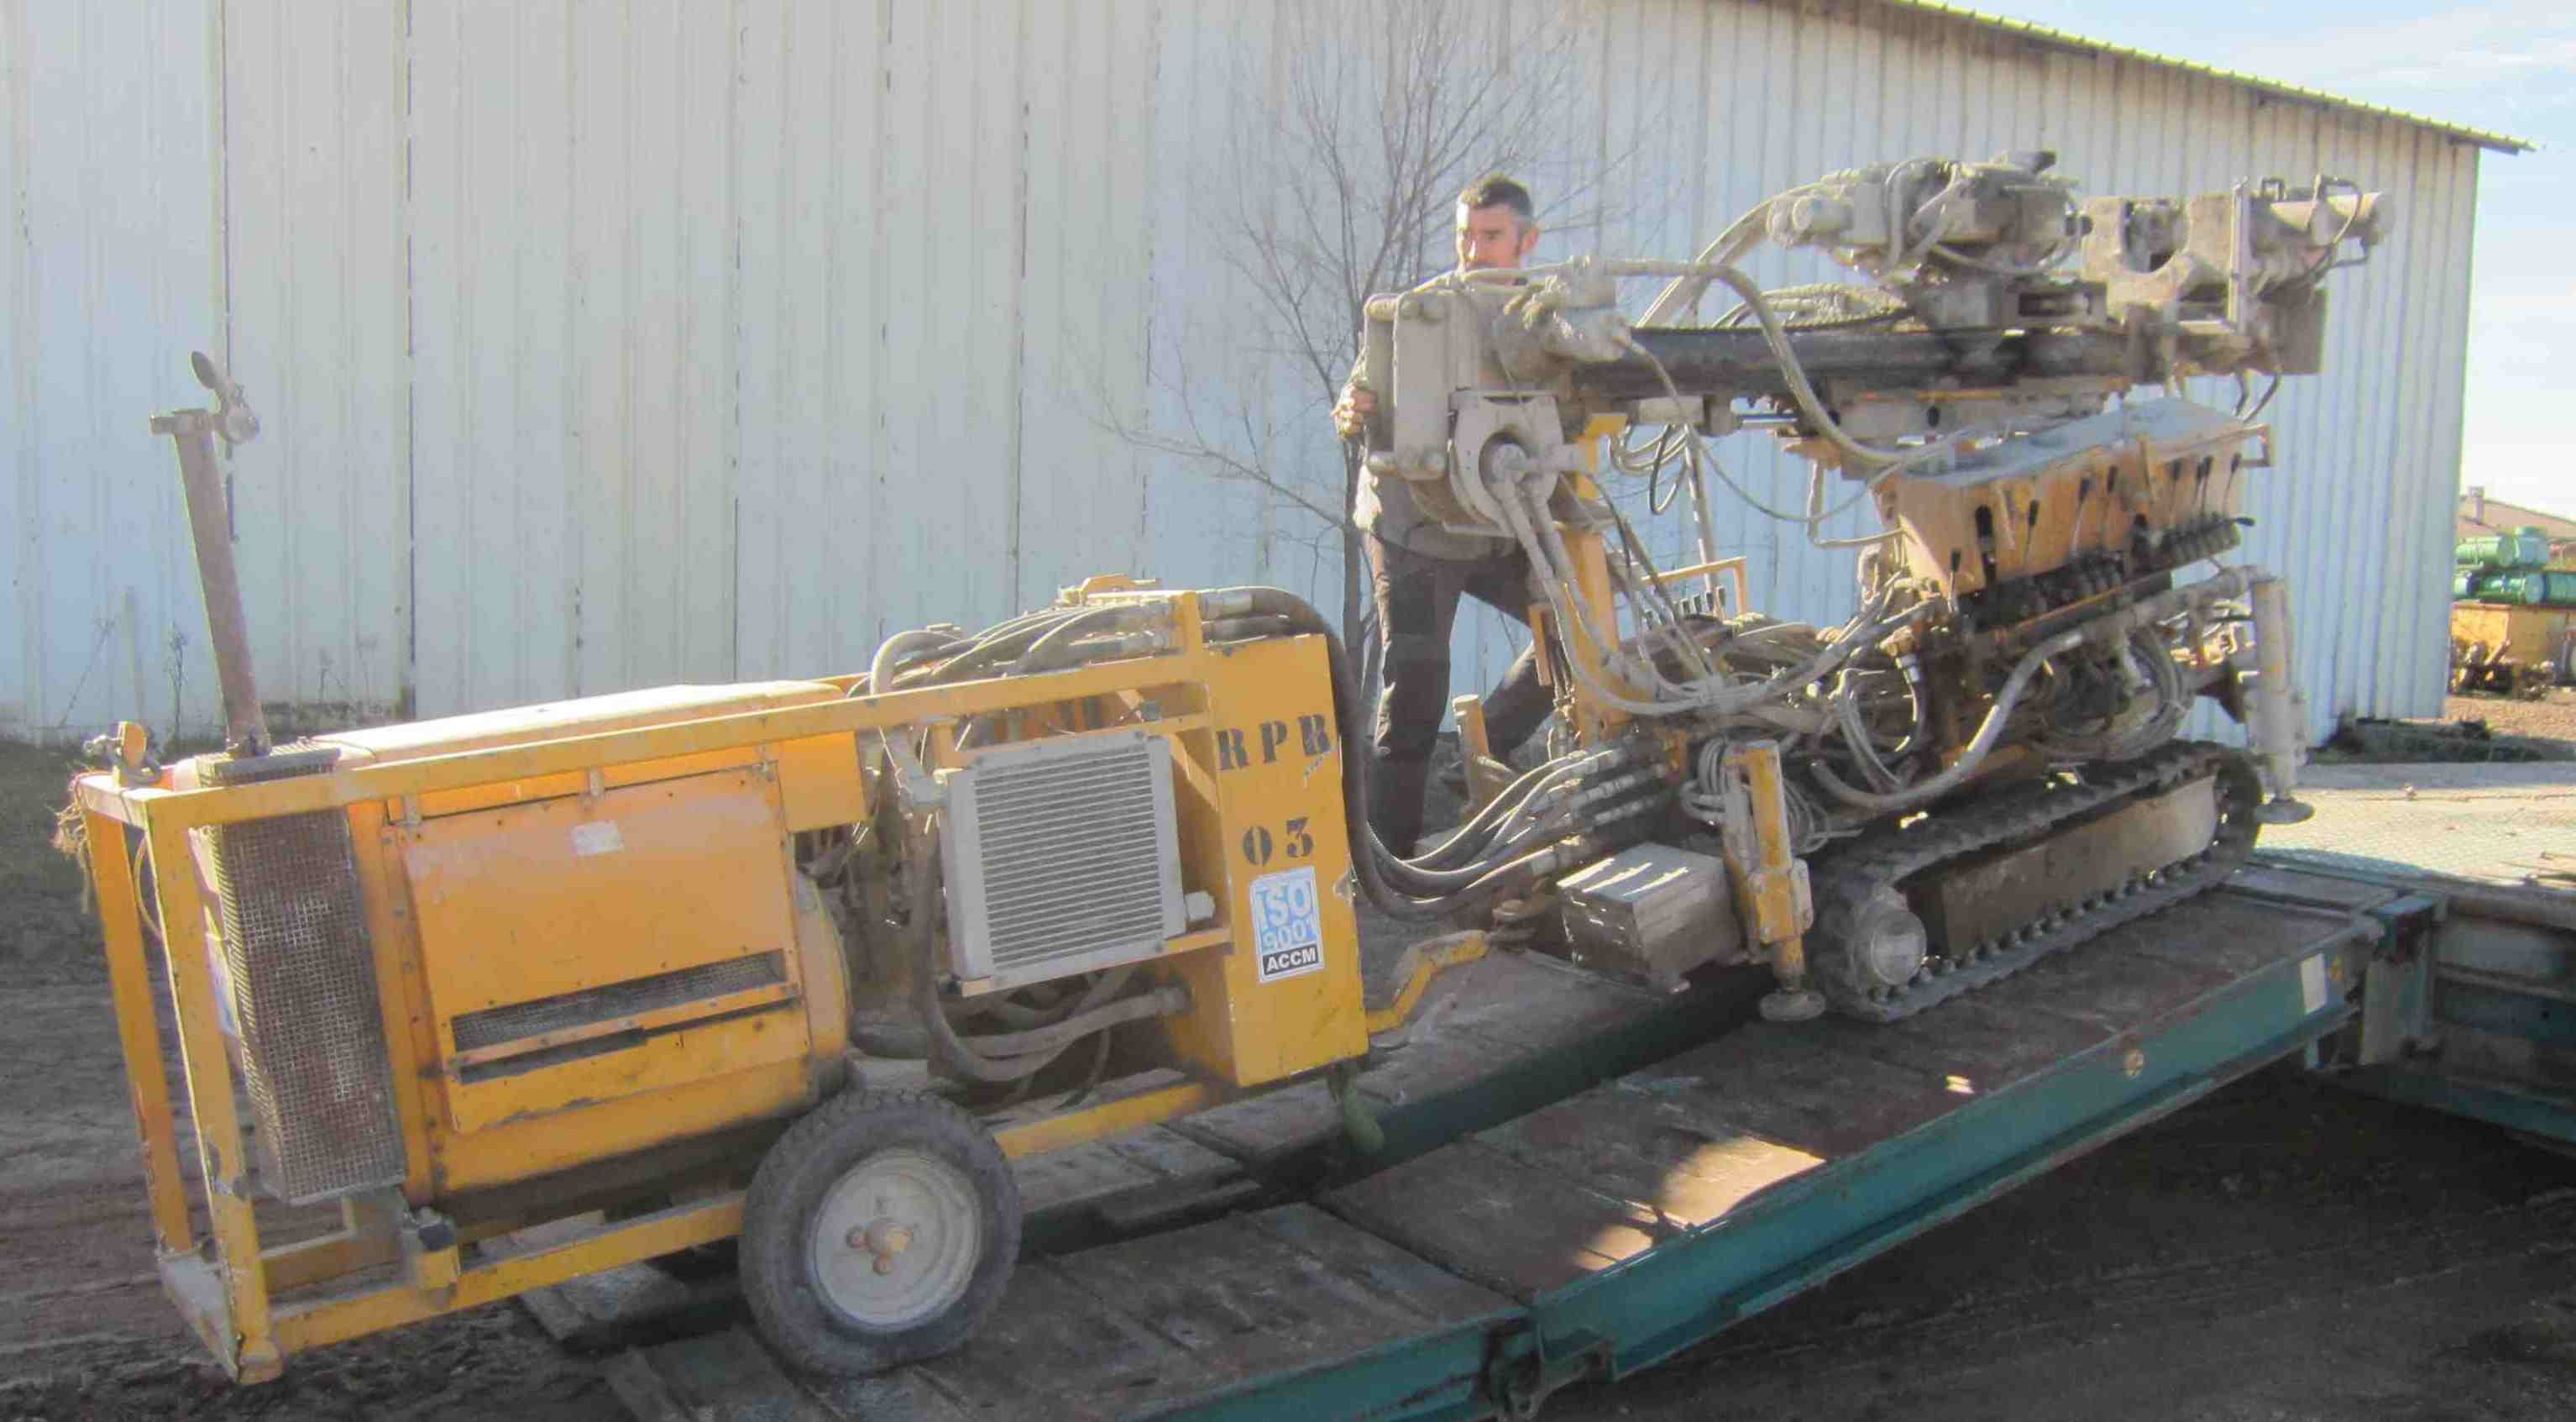 Used BERETTA T43 (2006) for rent and sale. used anchoring and micropiling machines for rent or sale